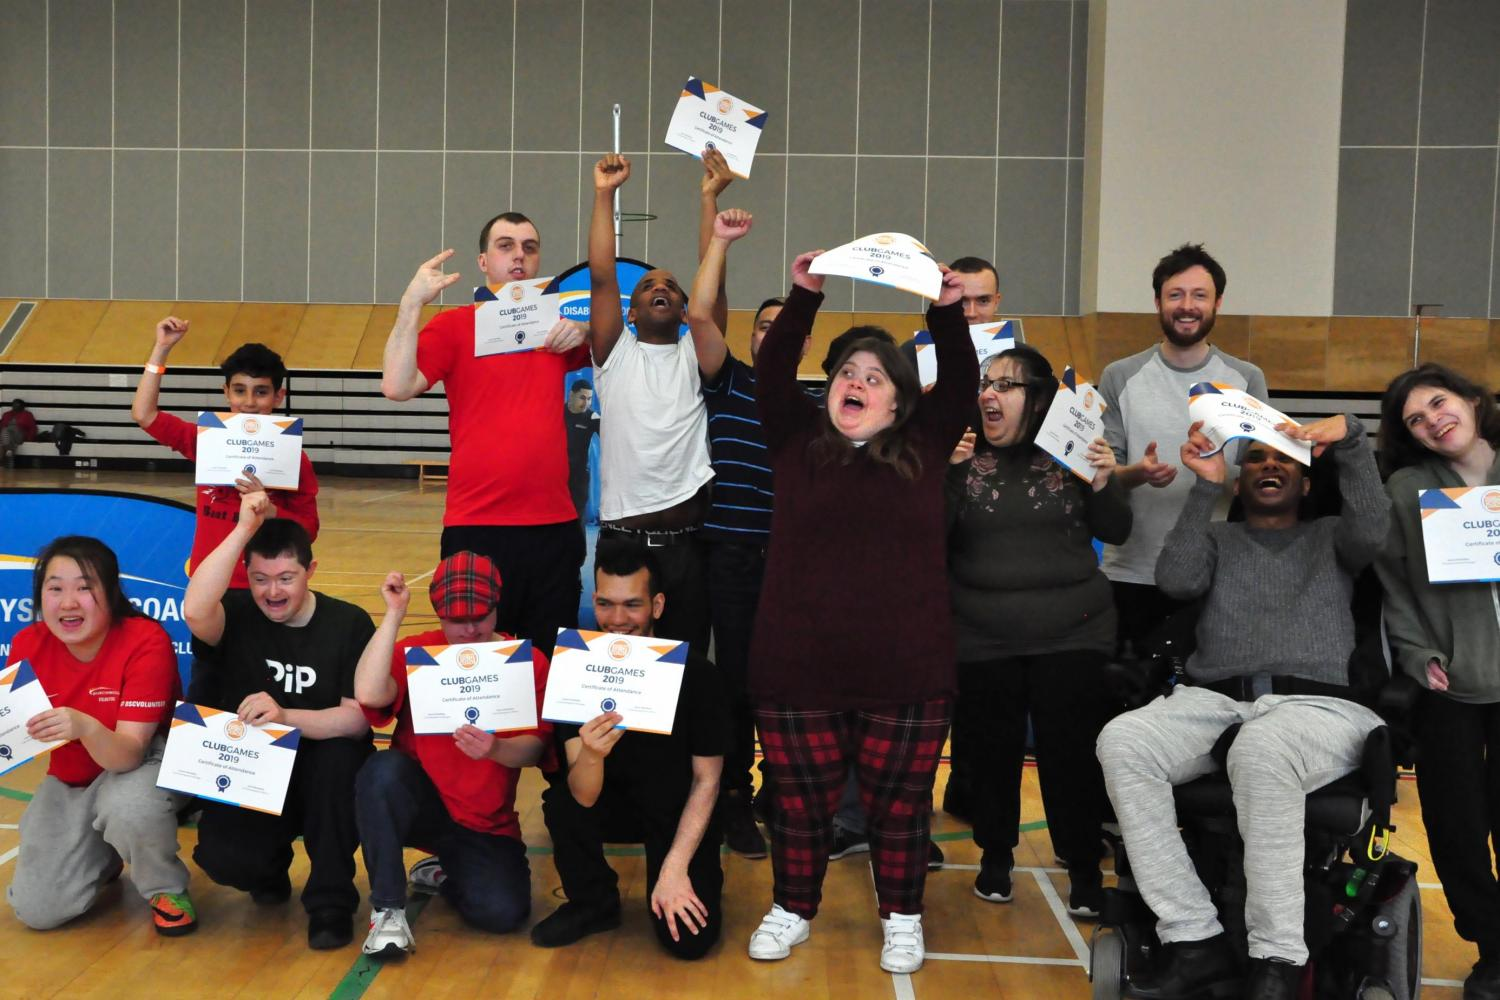 Disability Sports Coach West ClubGames 2019